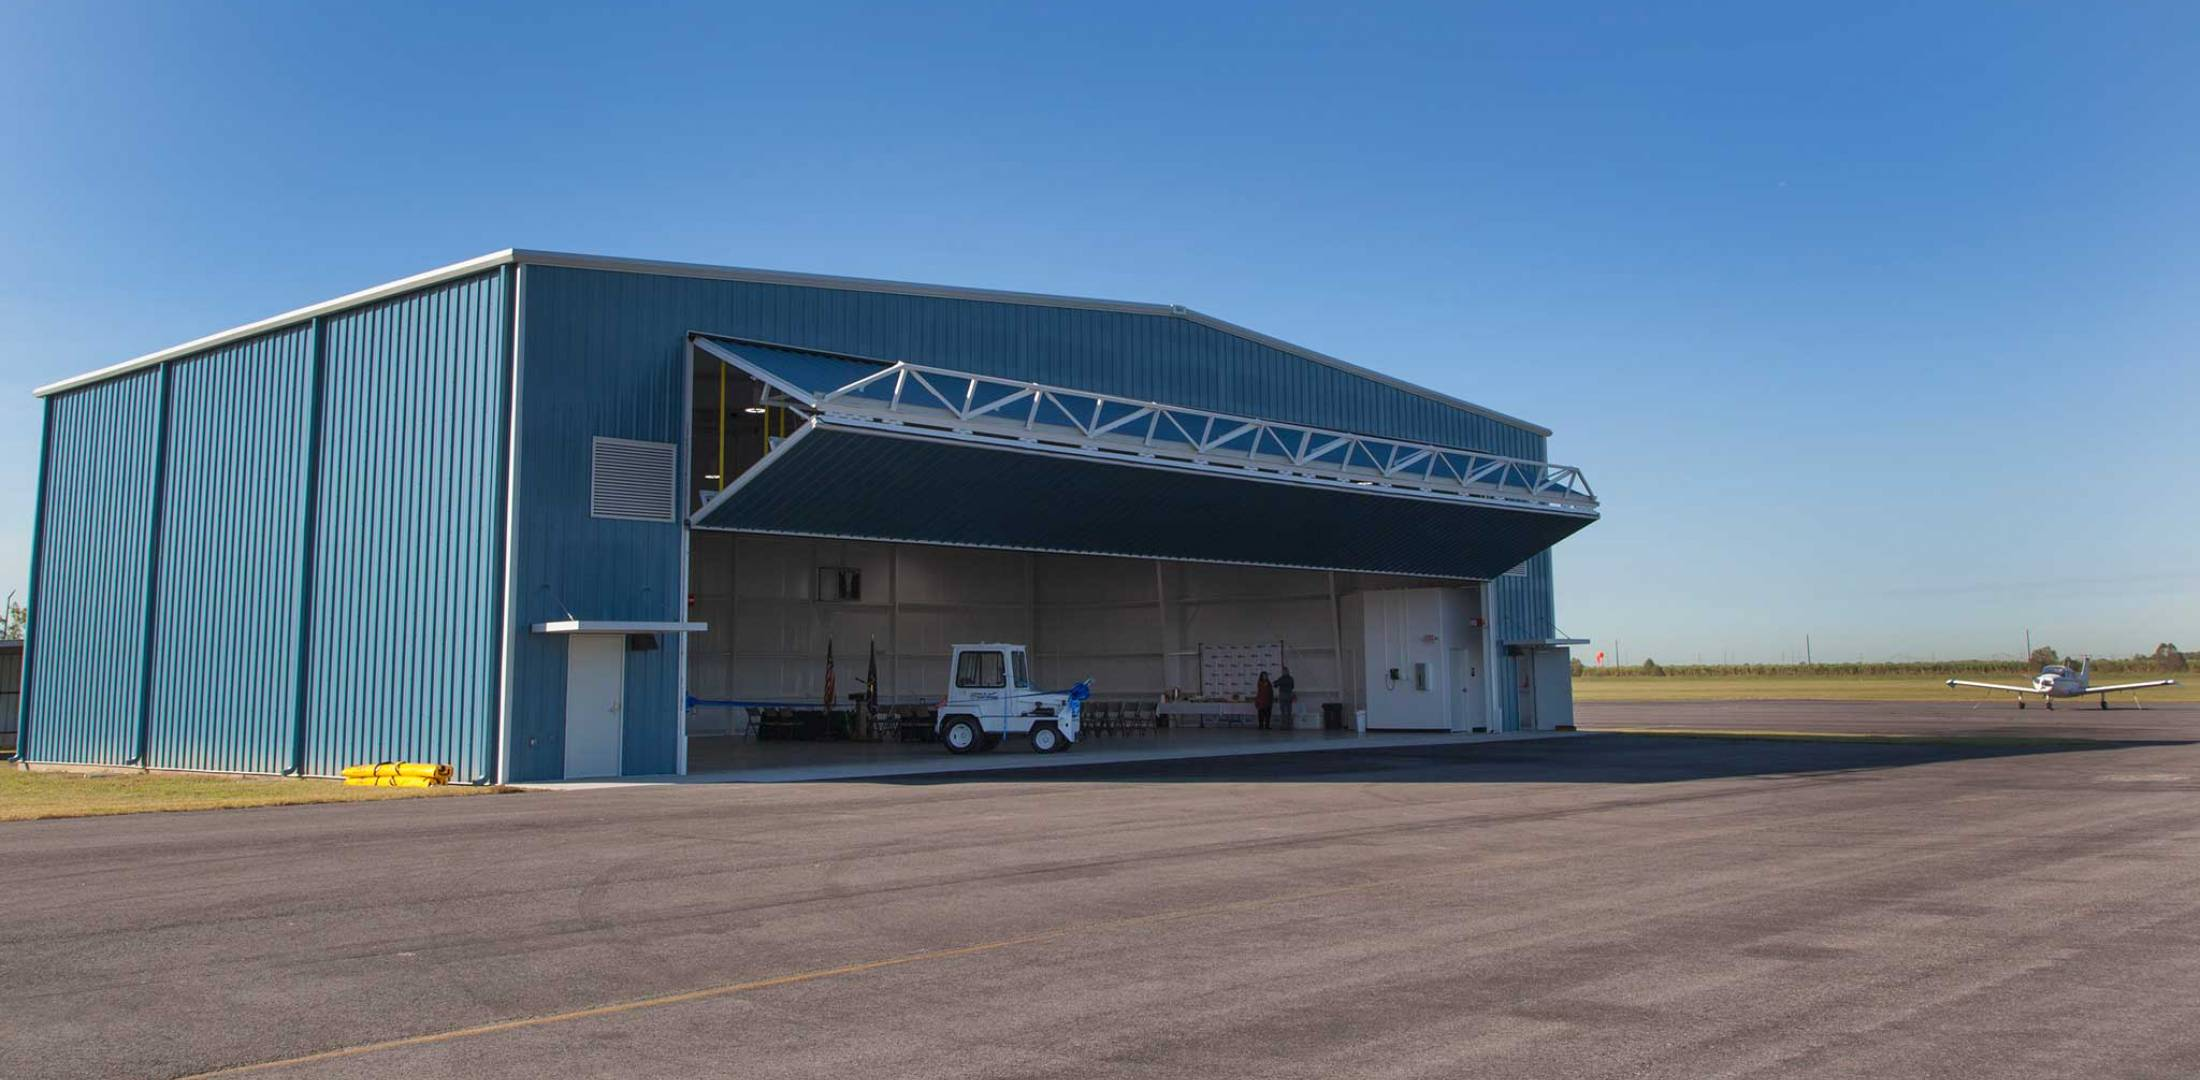 Louisiana Airport Debuts First Transient Hangar Business